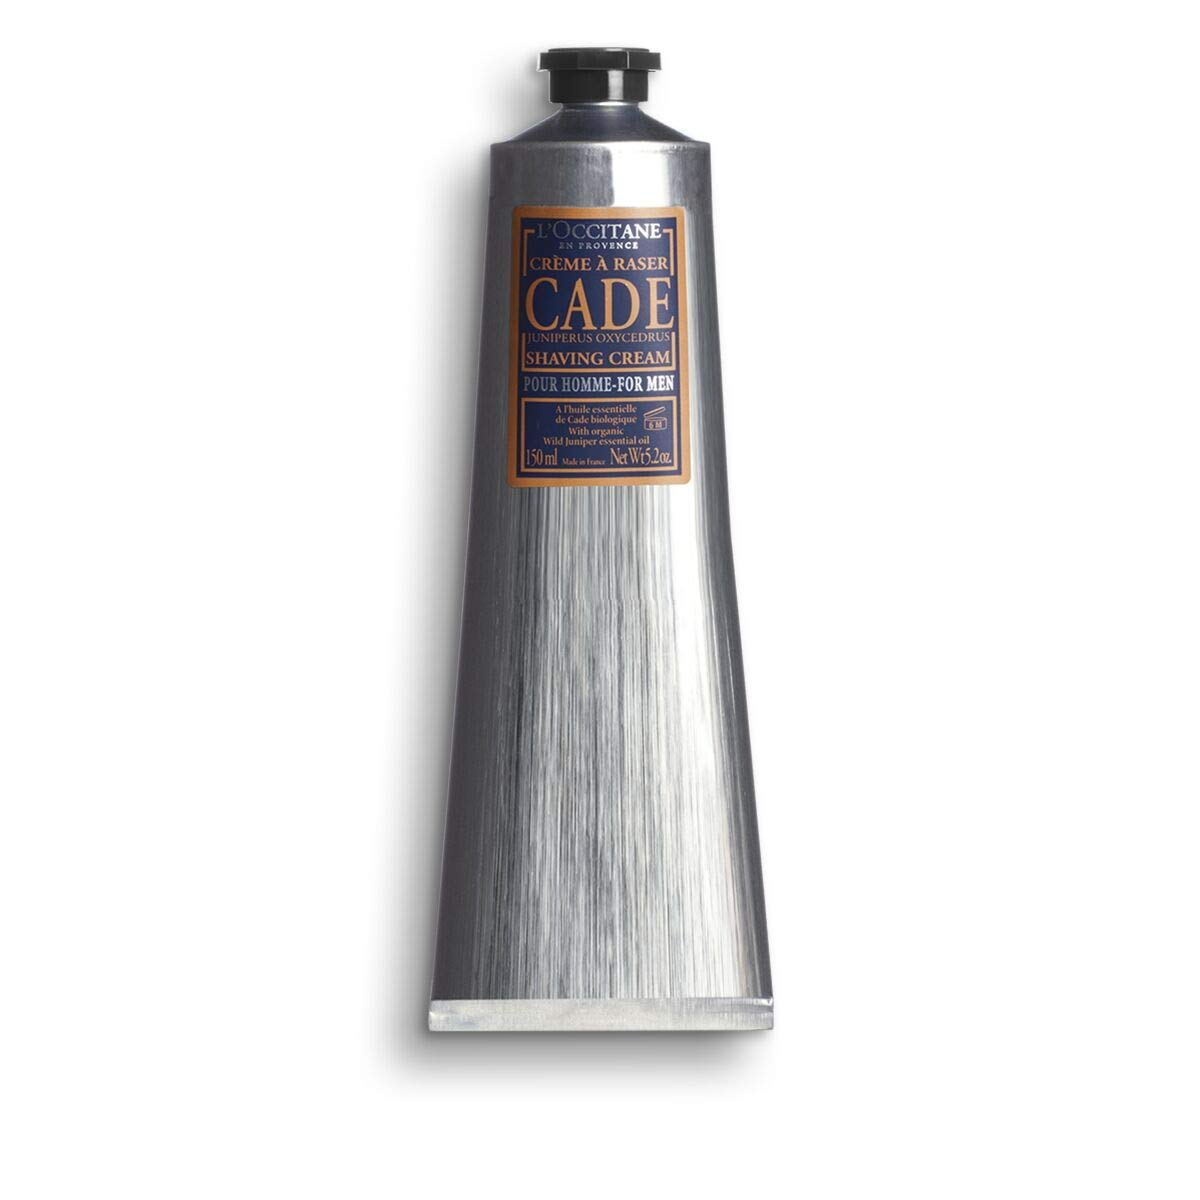 L'Occitane Cade Shaving Cream Enriched with Essential Oils and Shea Butter, 5.2 fl. oz. by L'Occitane